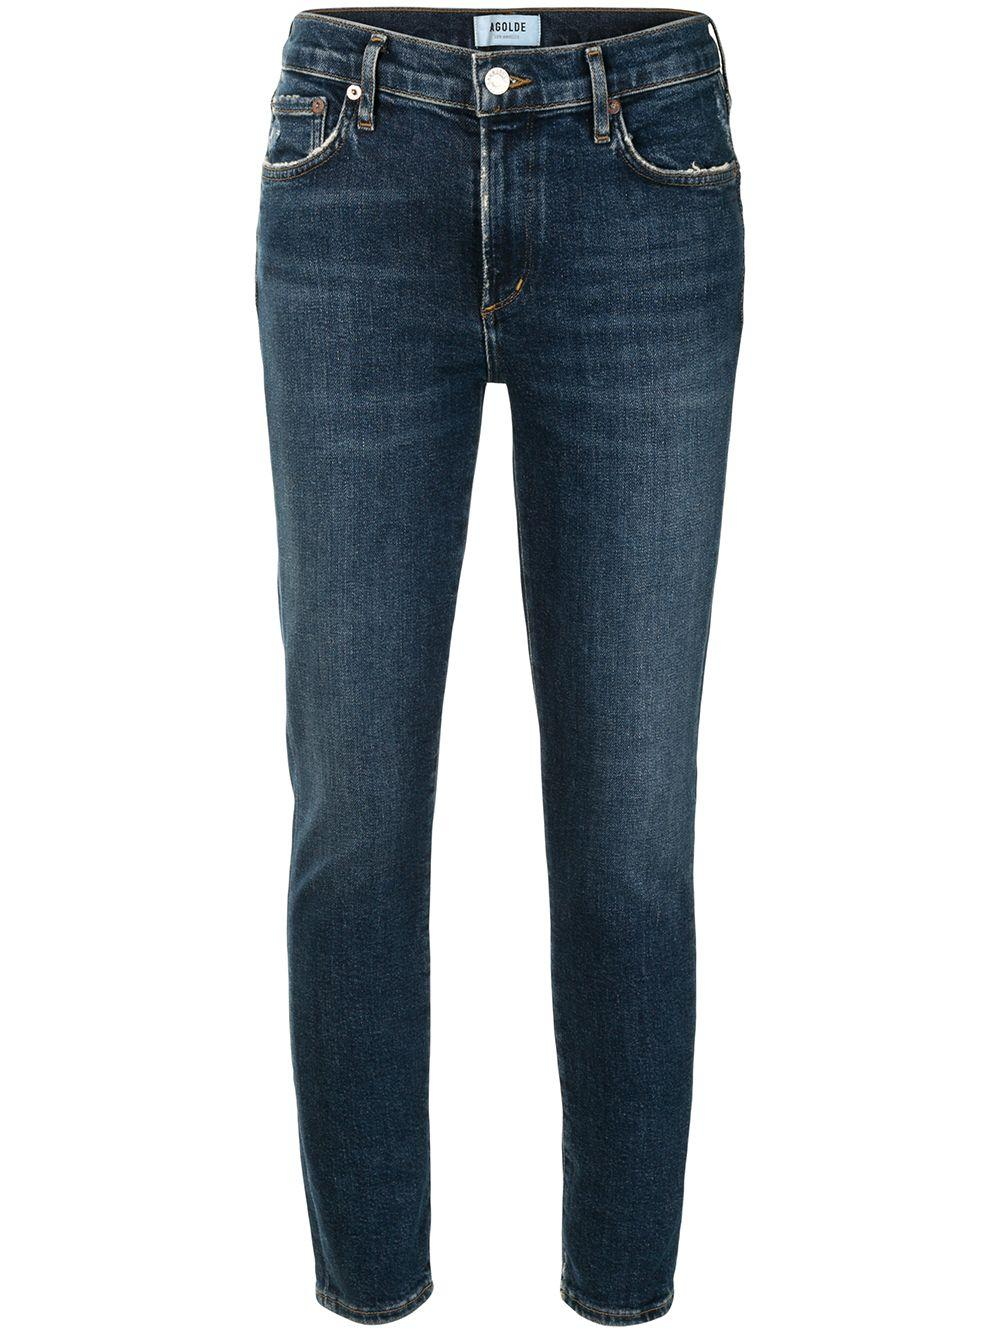 Sophie Mid Rise Skinny Jean Item # A123-1256